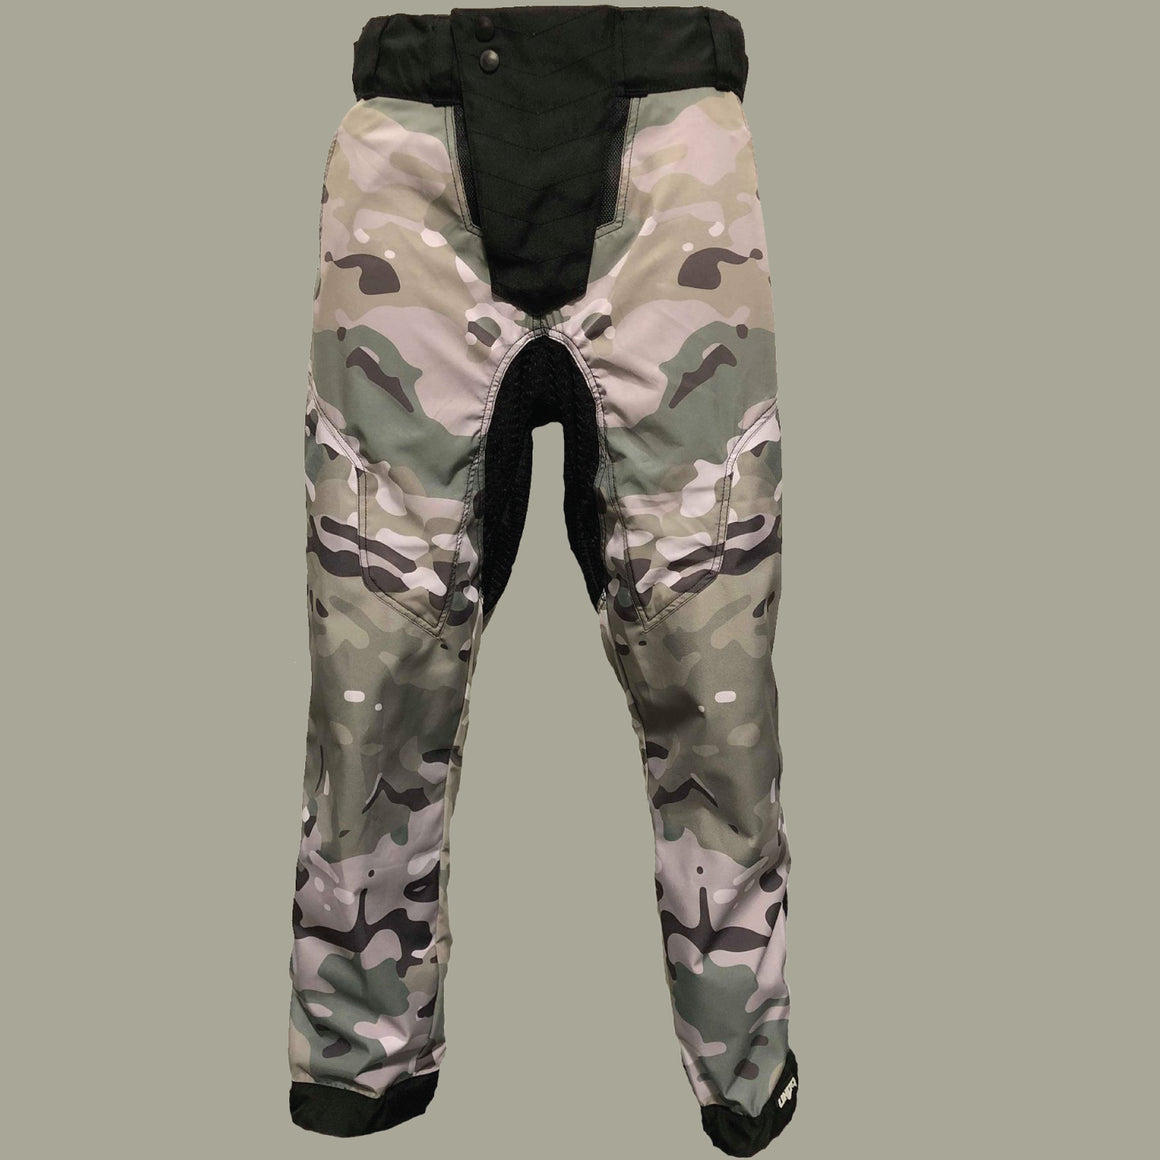 UNDR RECON PANTS - MULTICAM